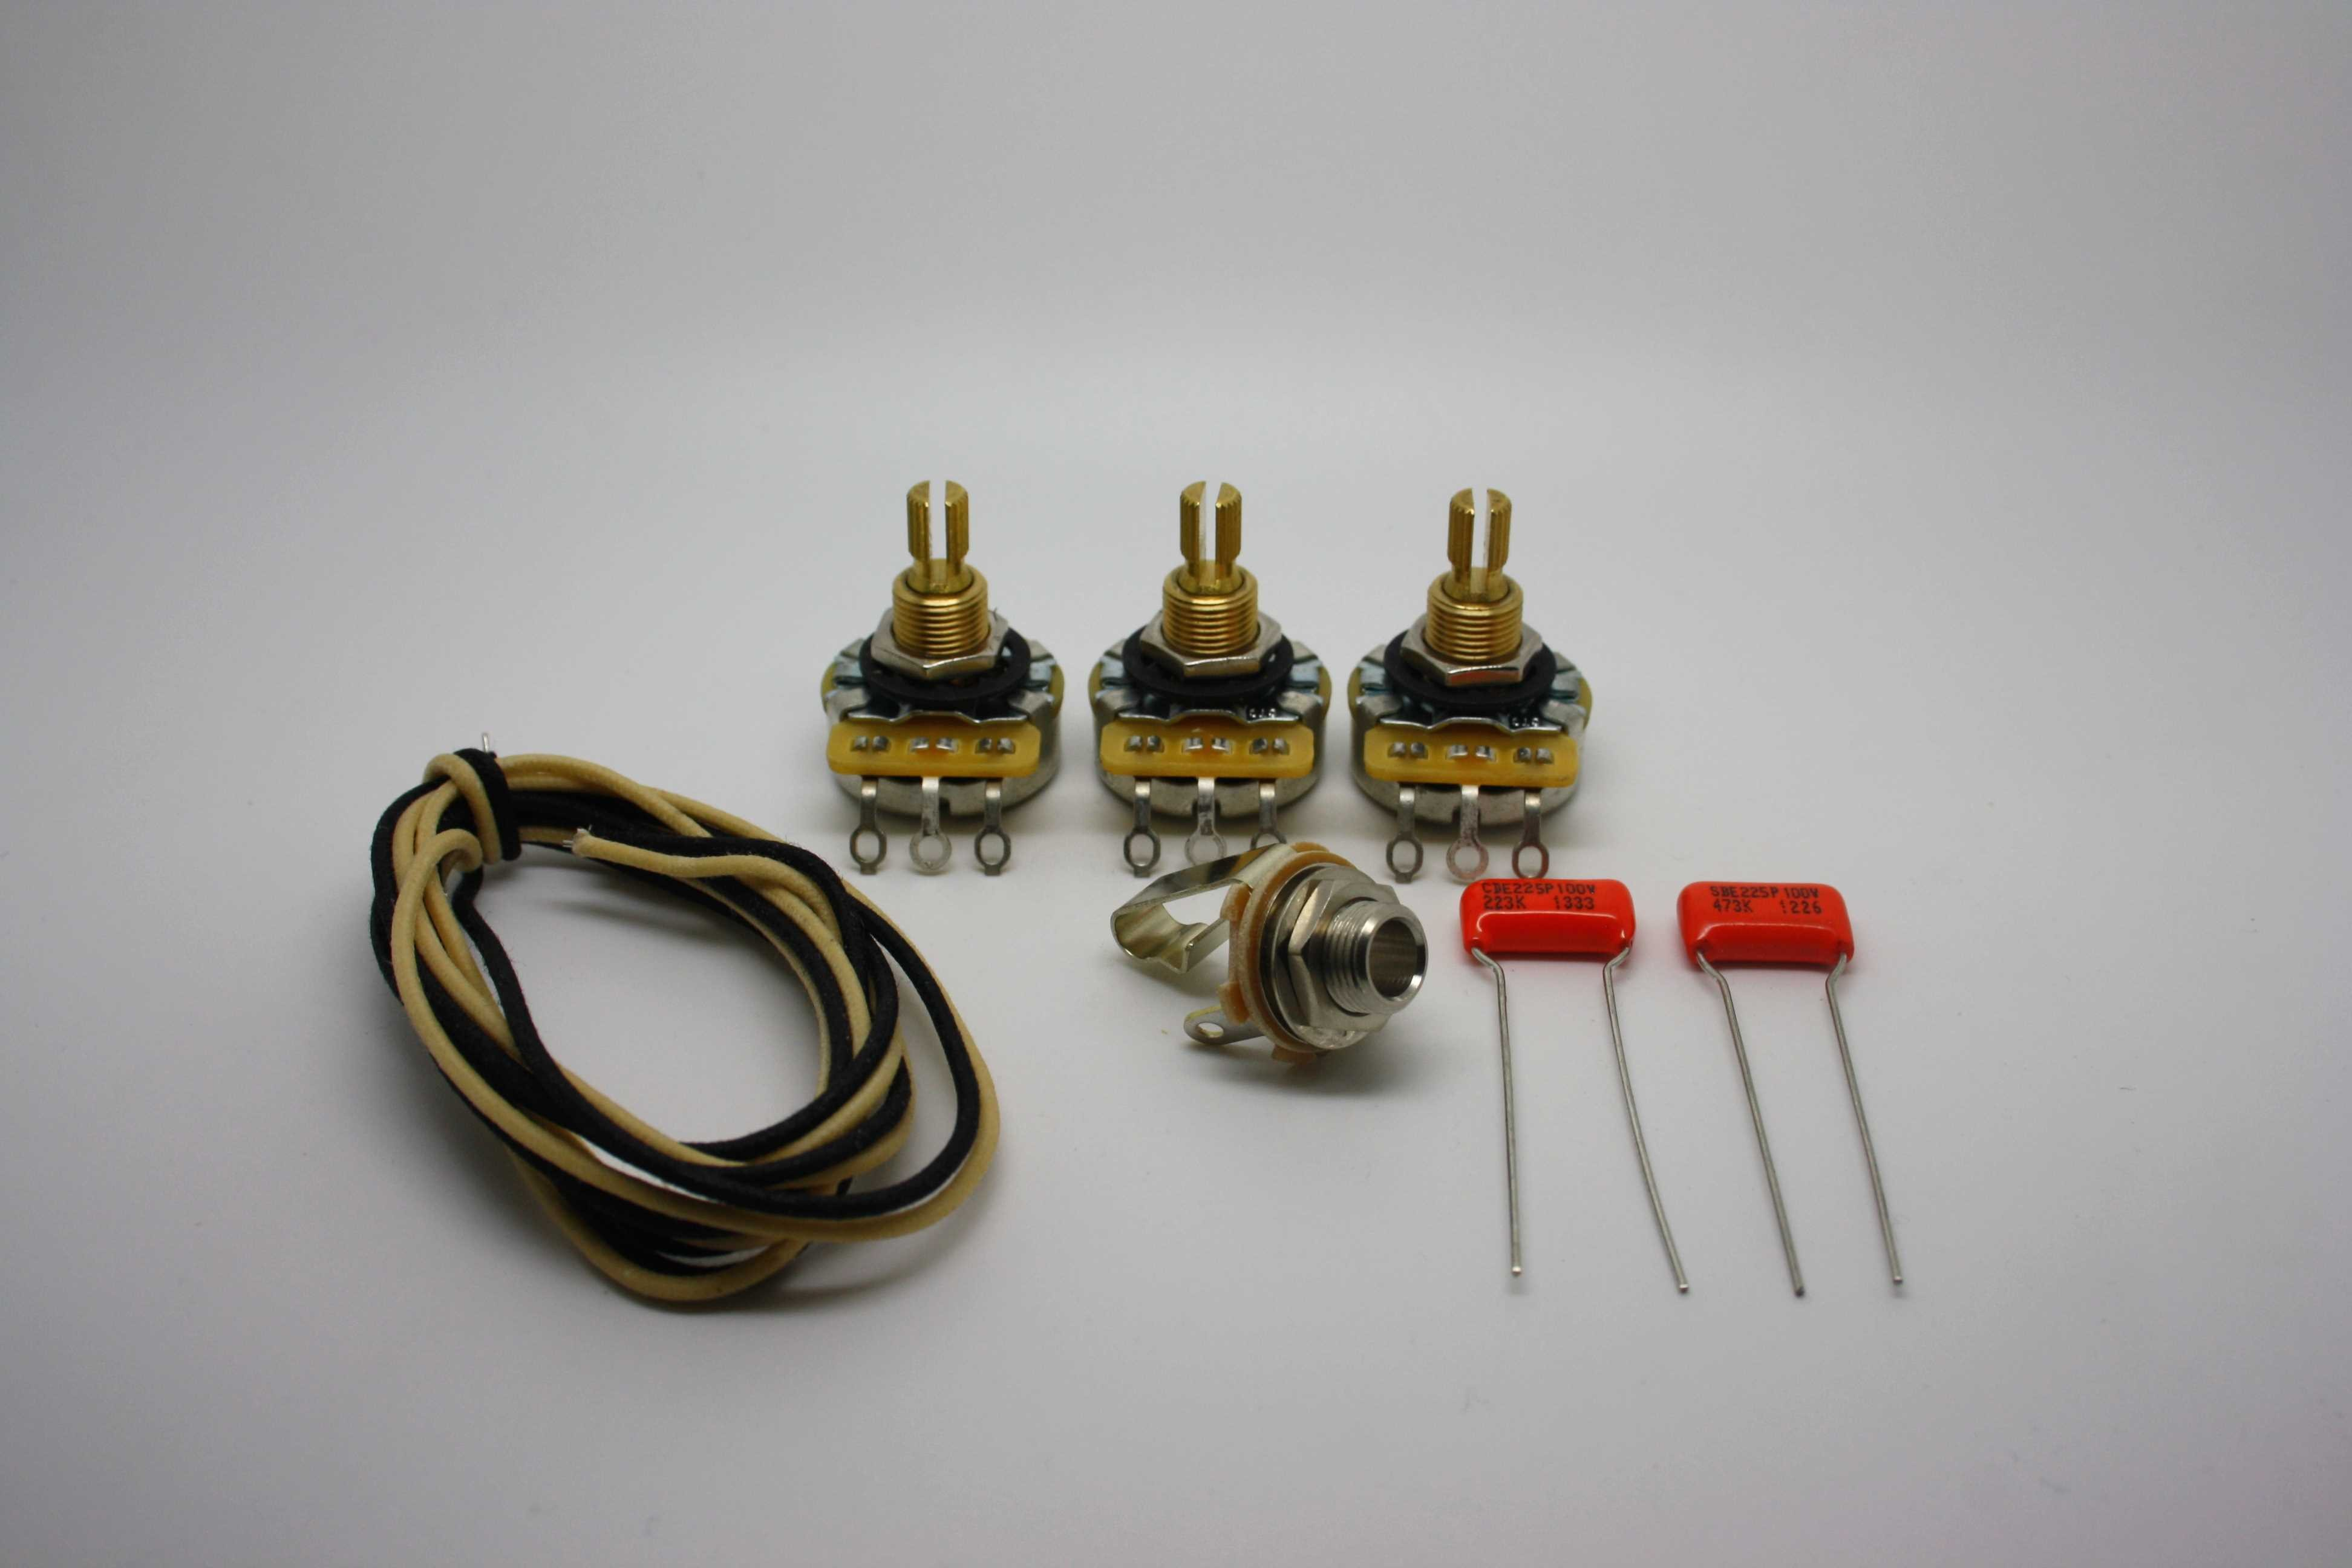 WIRING SUPER KIT FOR FENDER JAZZ B AND OTHER J-B STYLE B GUITAR BAJO on